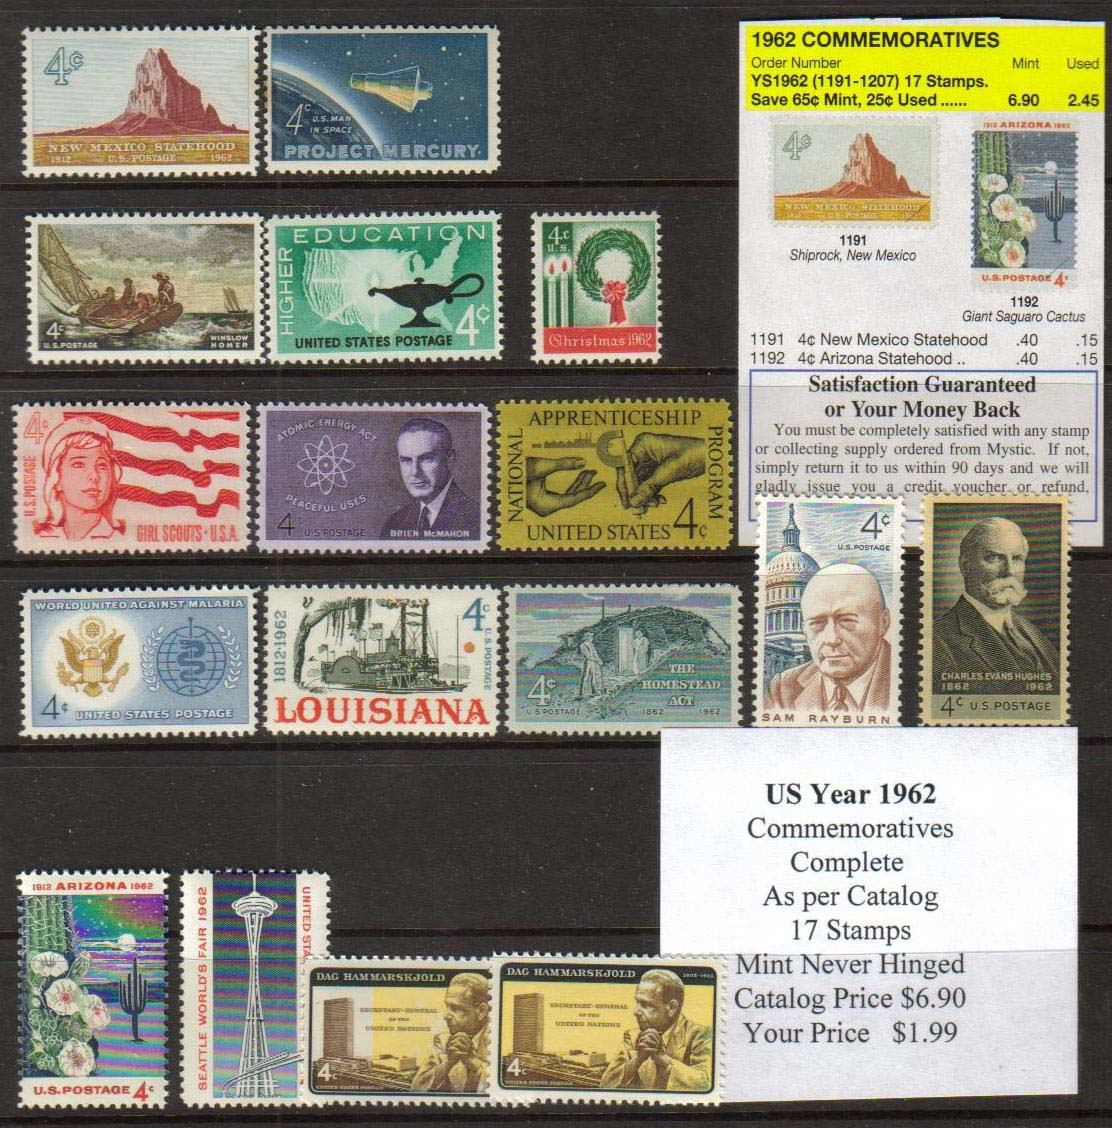 1962 COMMEMORATIVES, 17 STAMPS